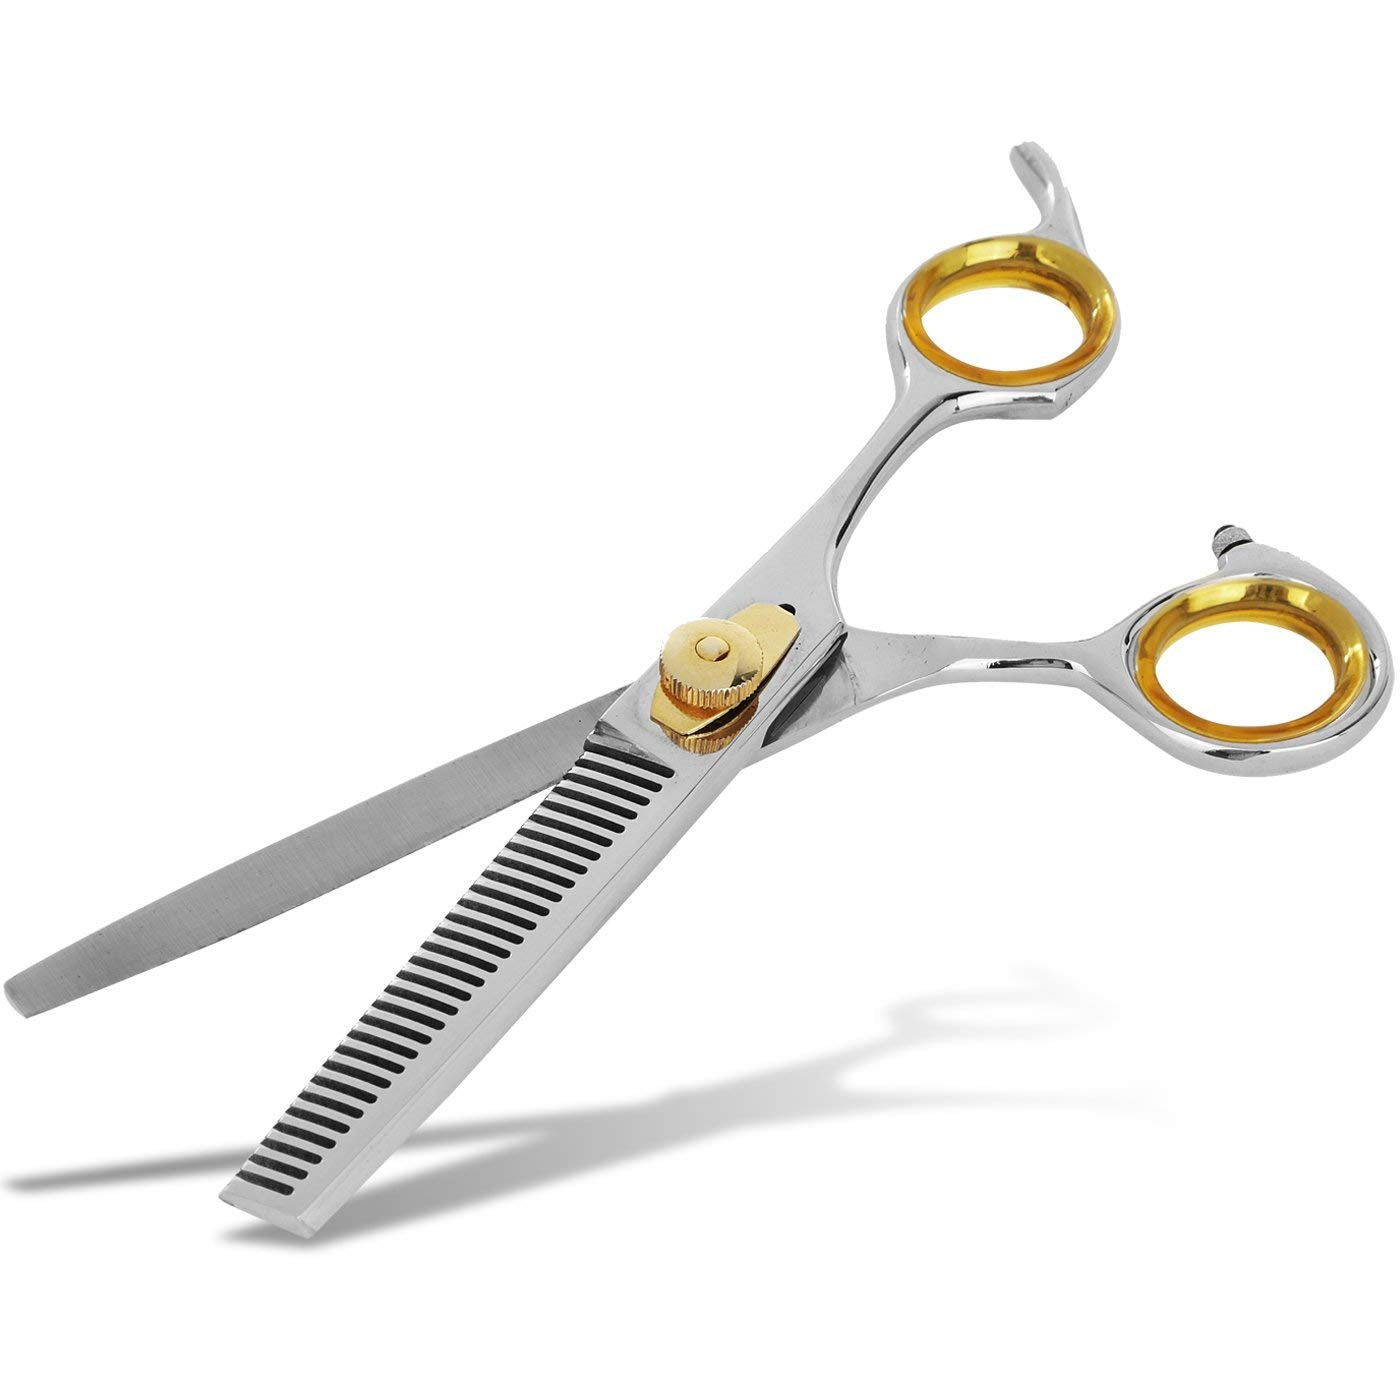 Hair Scissors Professional Hairdresser Hair 6.5inch Cutting Scissors 6 Inch Thinning Scissors High Quality Barber Shop Consumers First Styling Tools